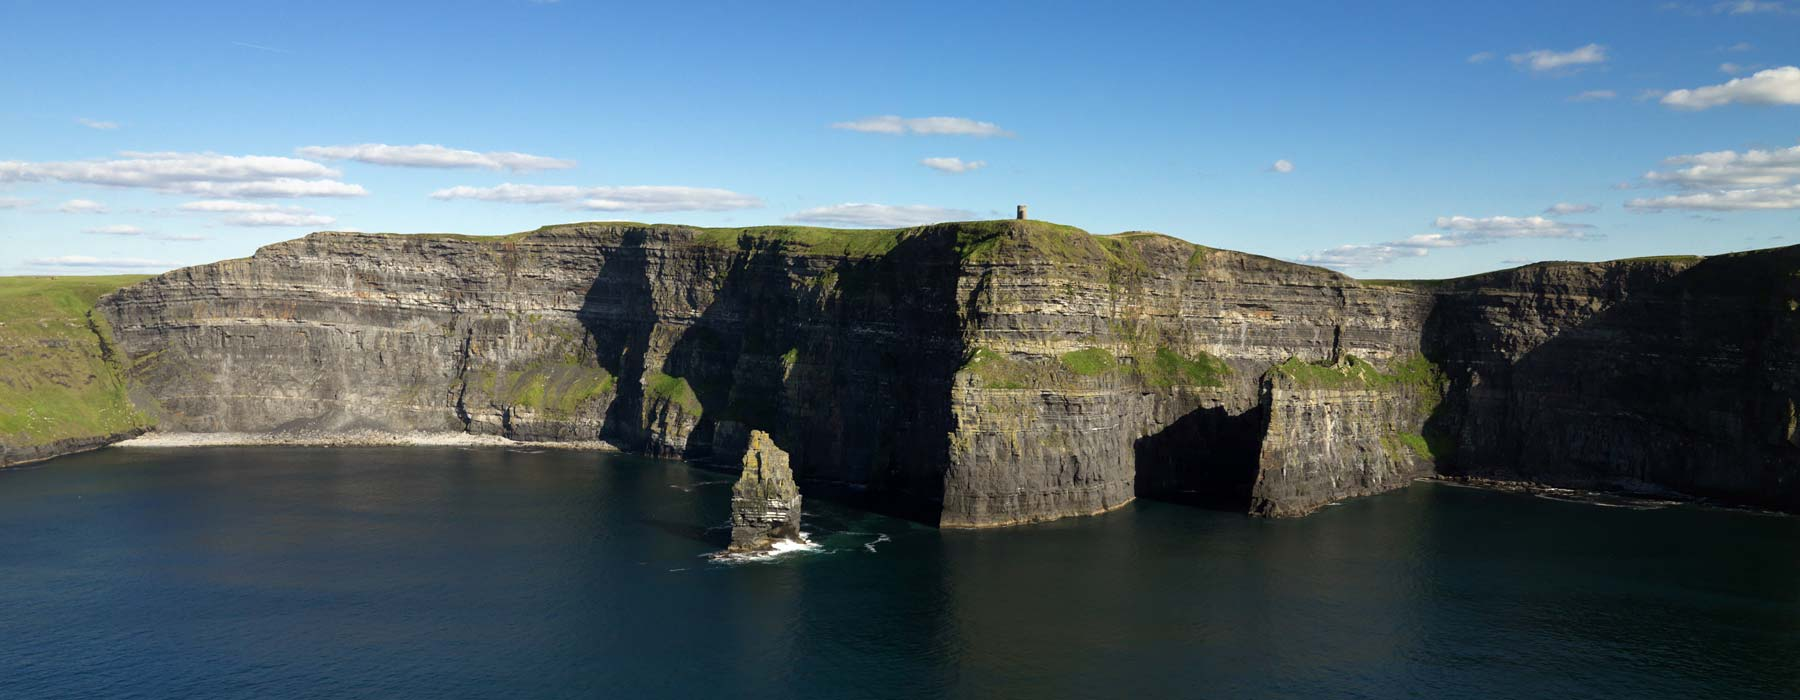 cliffs-of-moher-from-sea.jpg